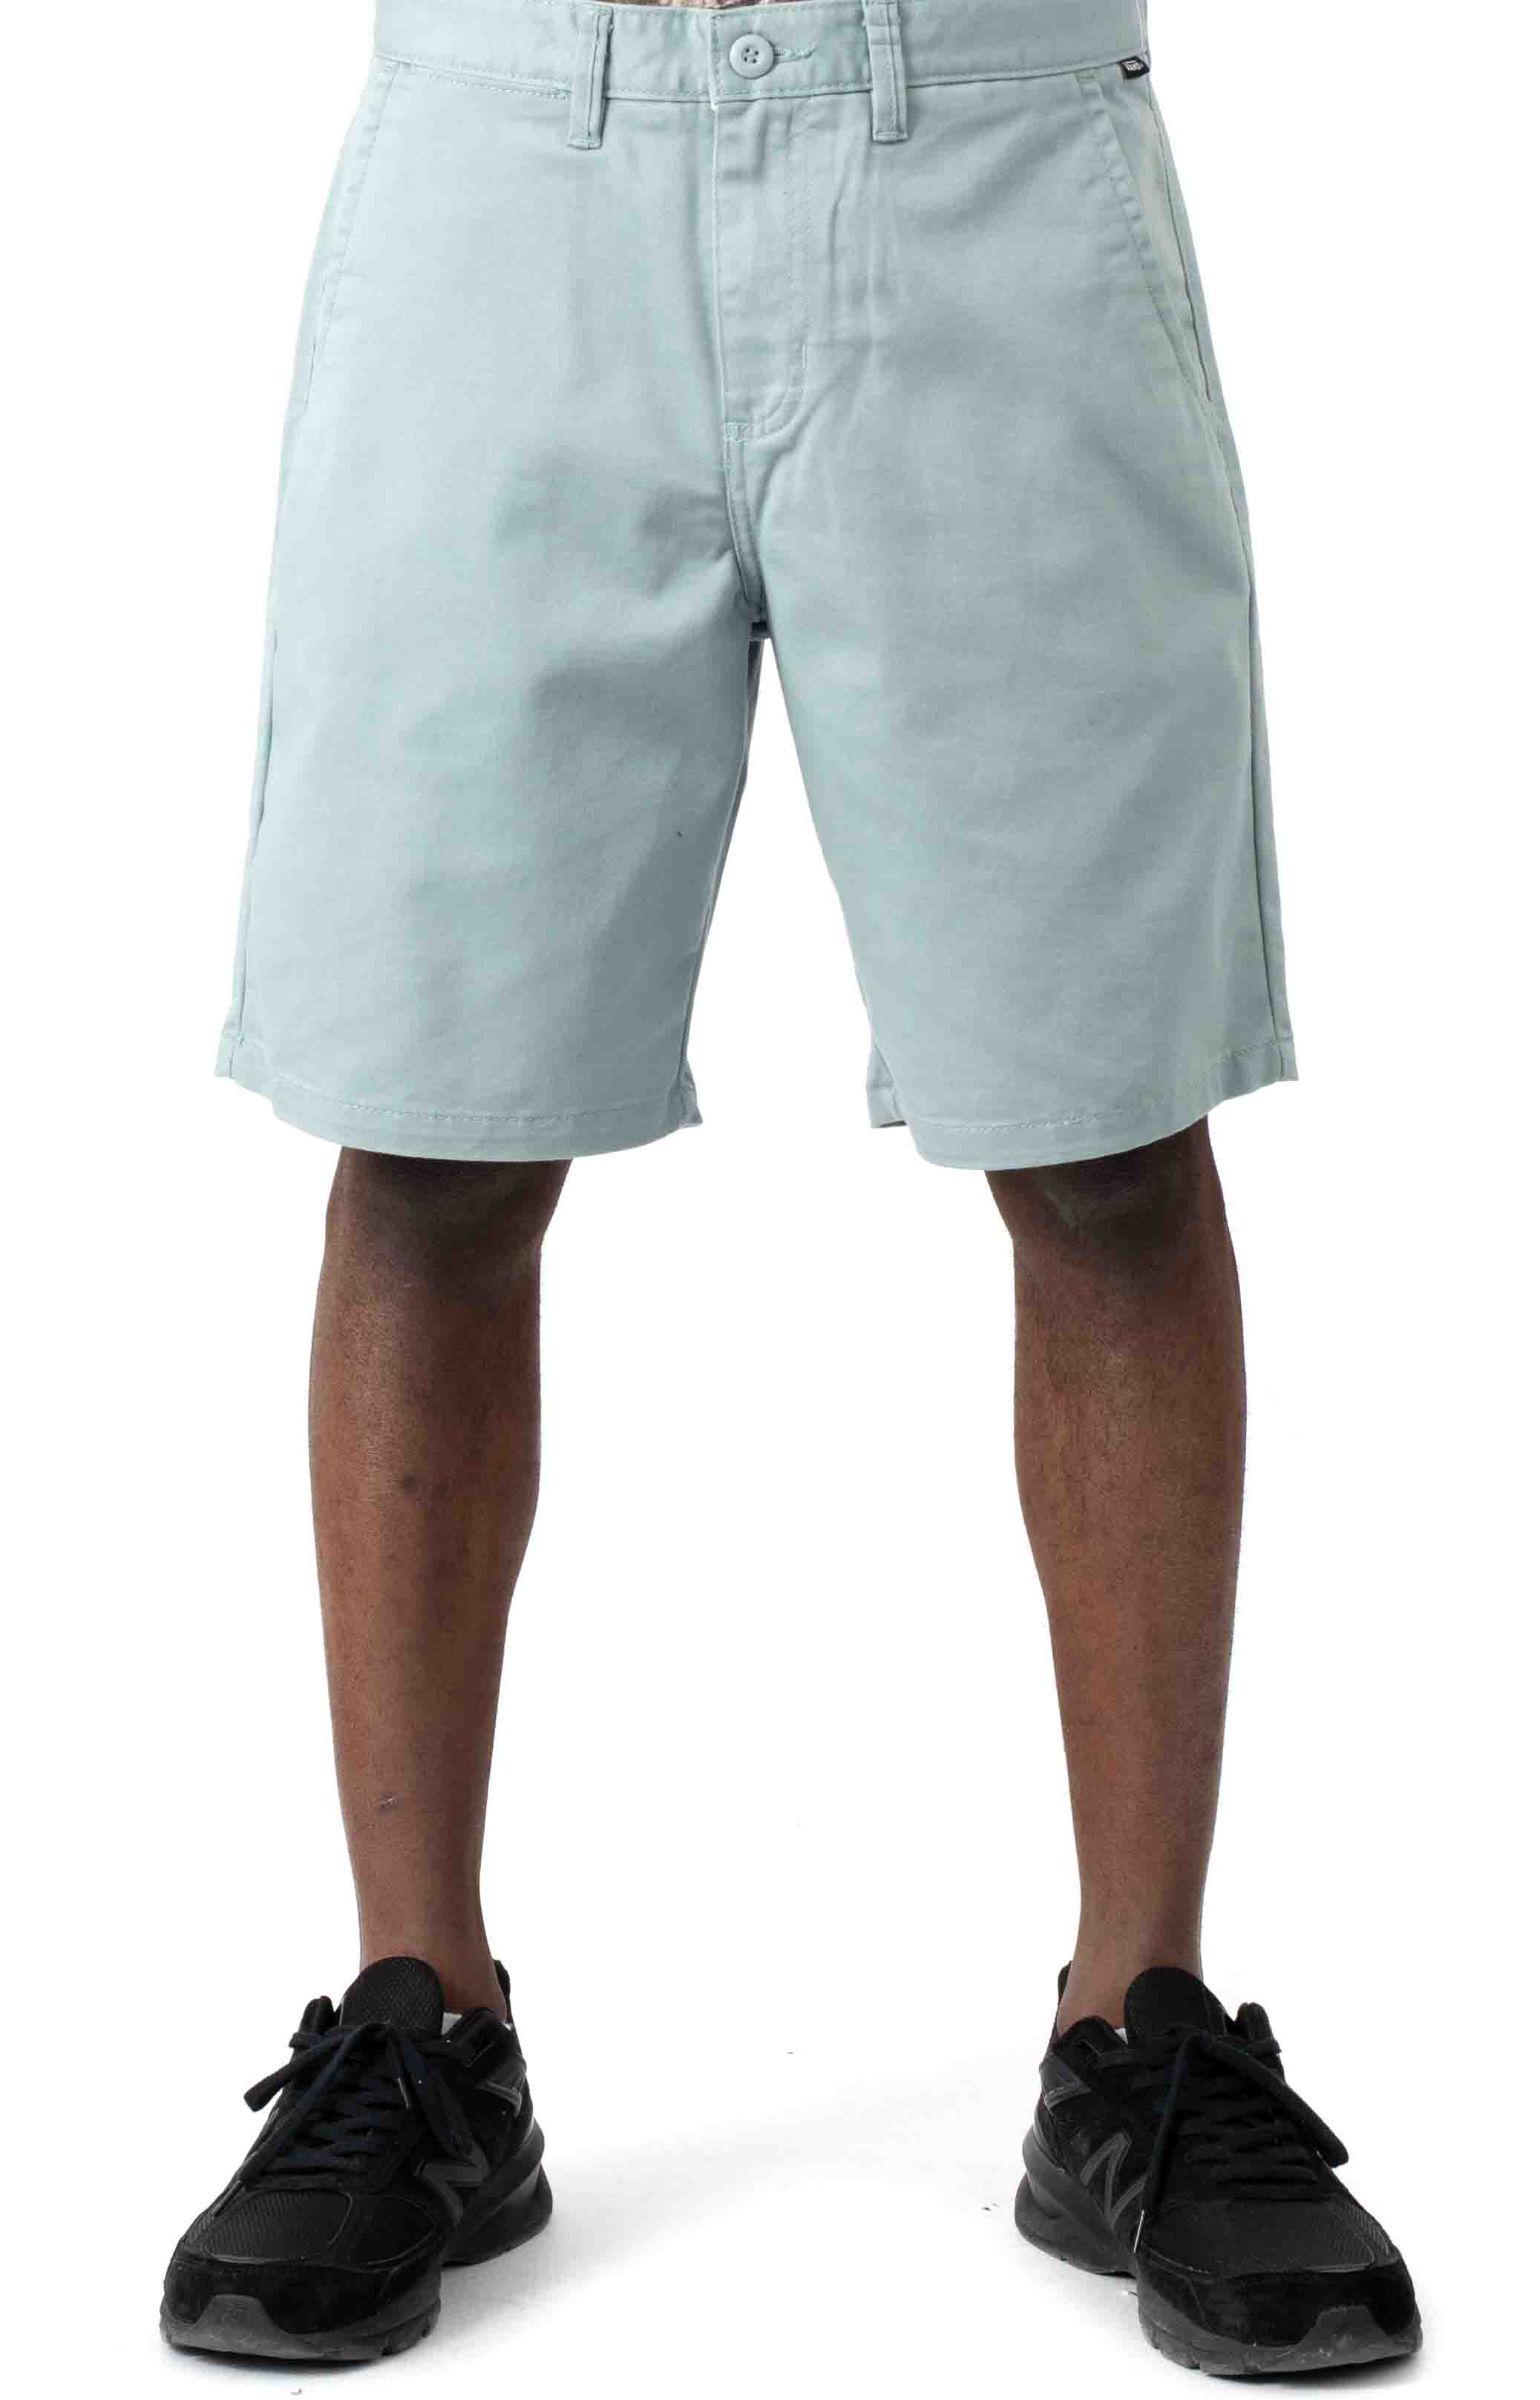 Authentic Stretch Shorts - Abyss 2